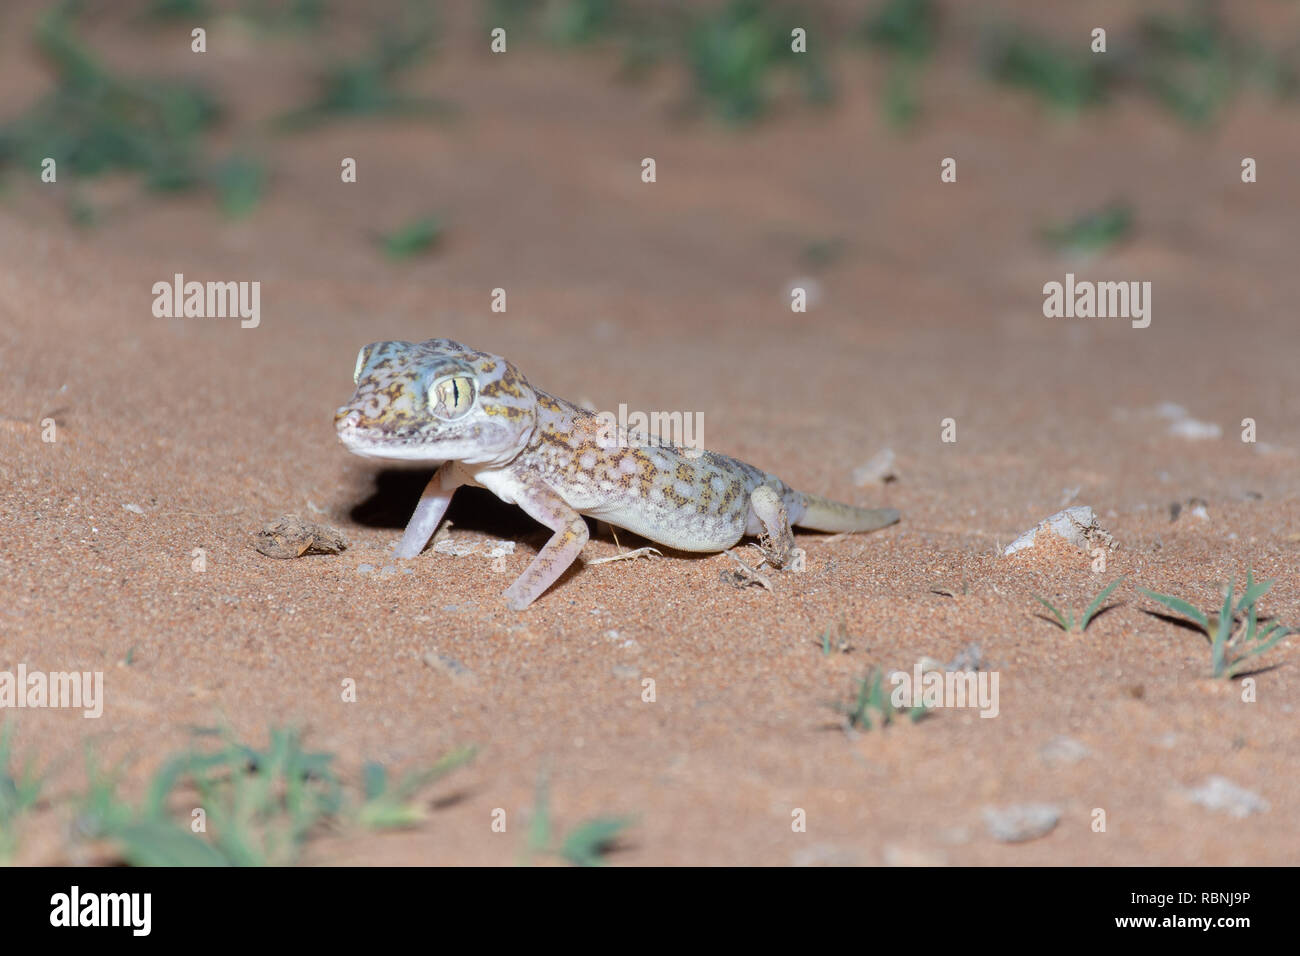 Gecko in the United Arab Emirates at night. Stock Photo